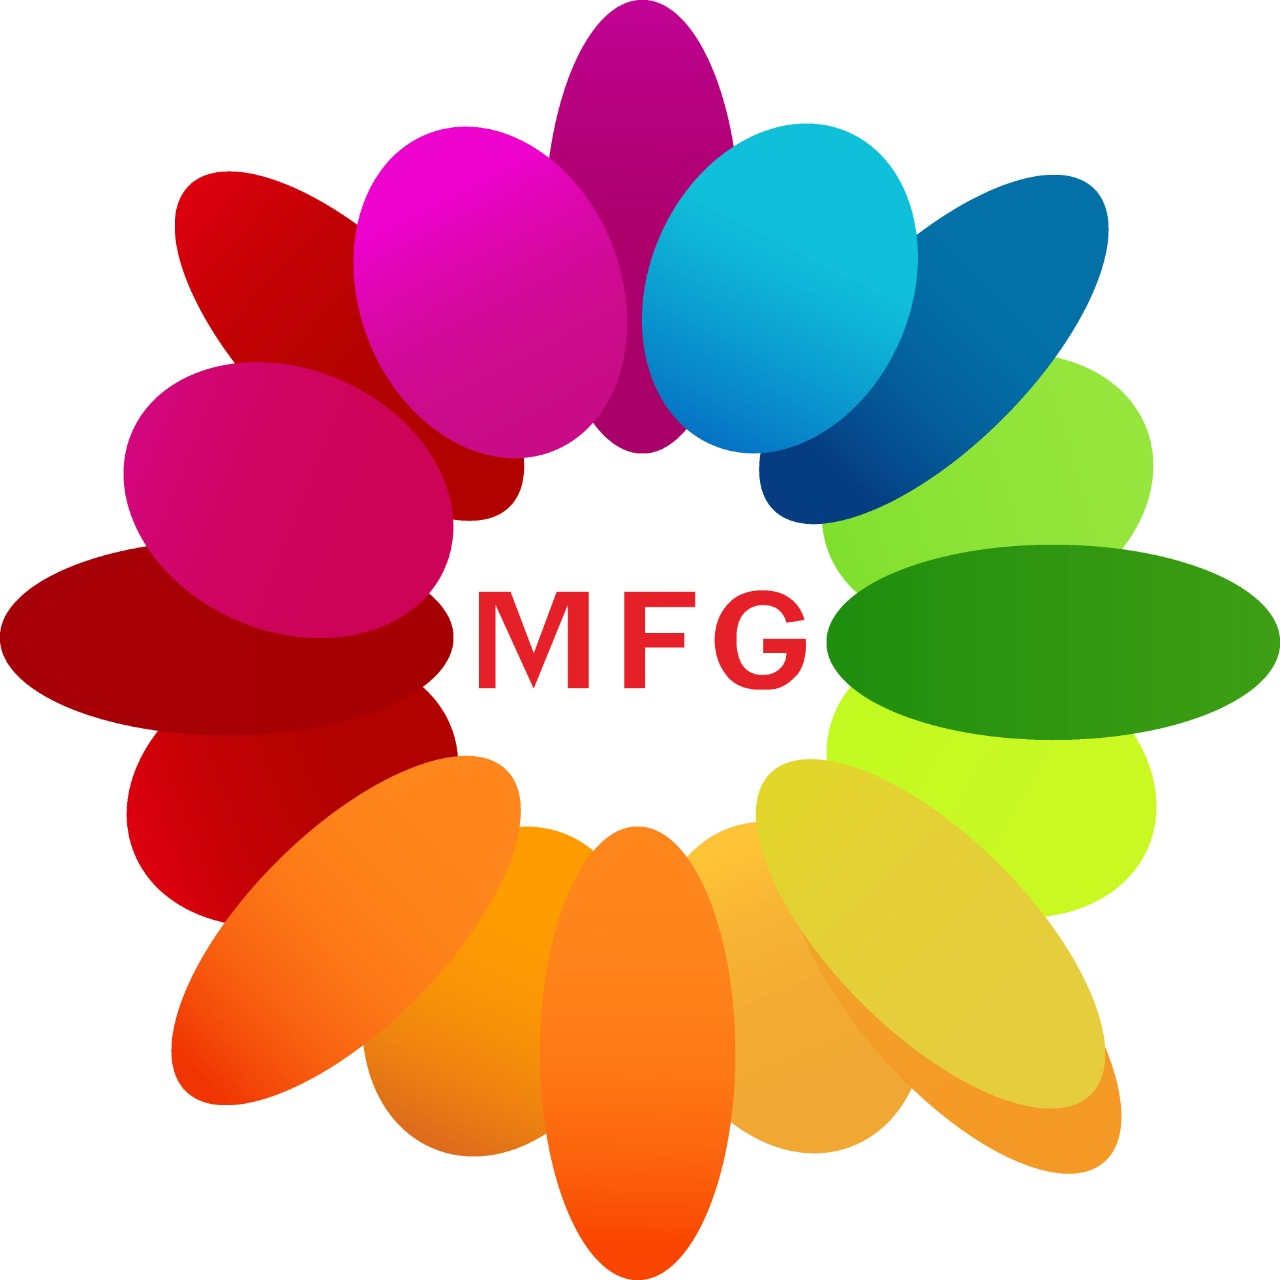 Mickey Mouse Cake 2.5 Kgs